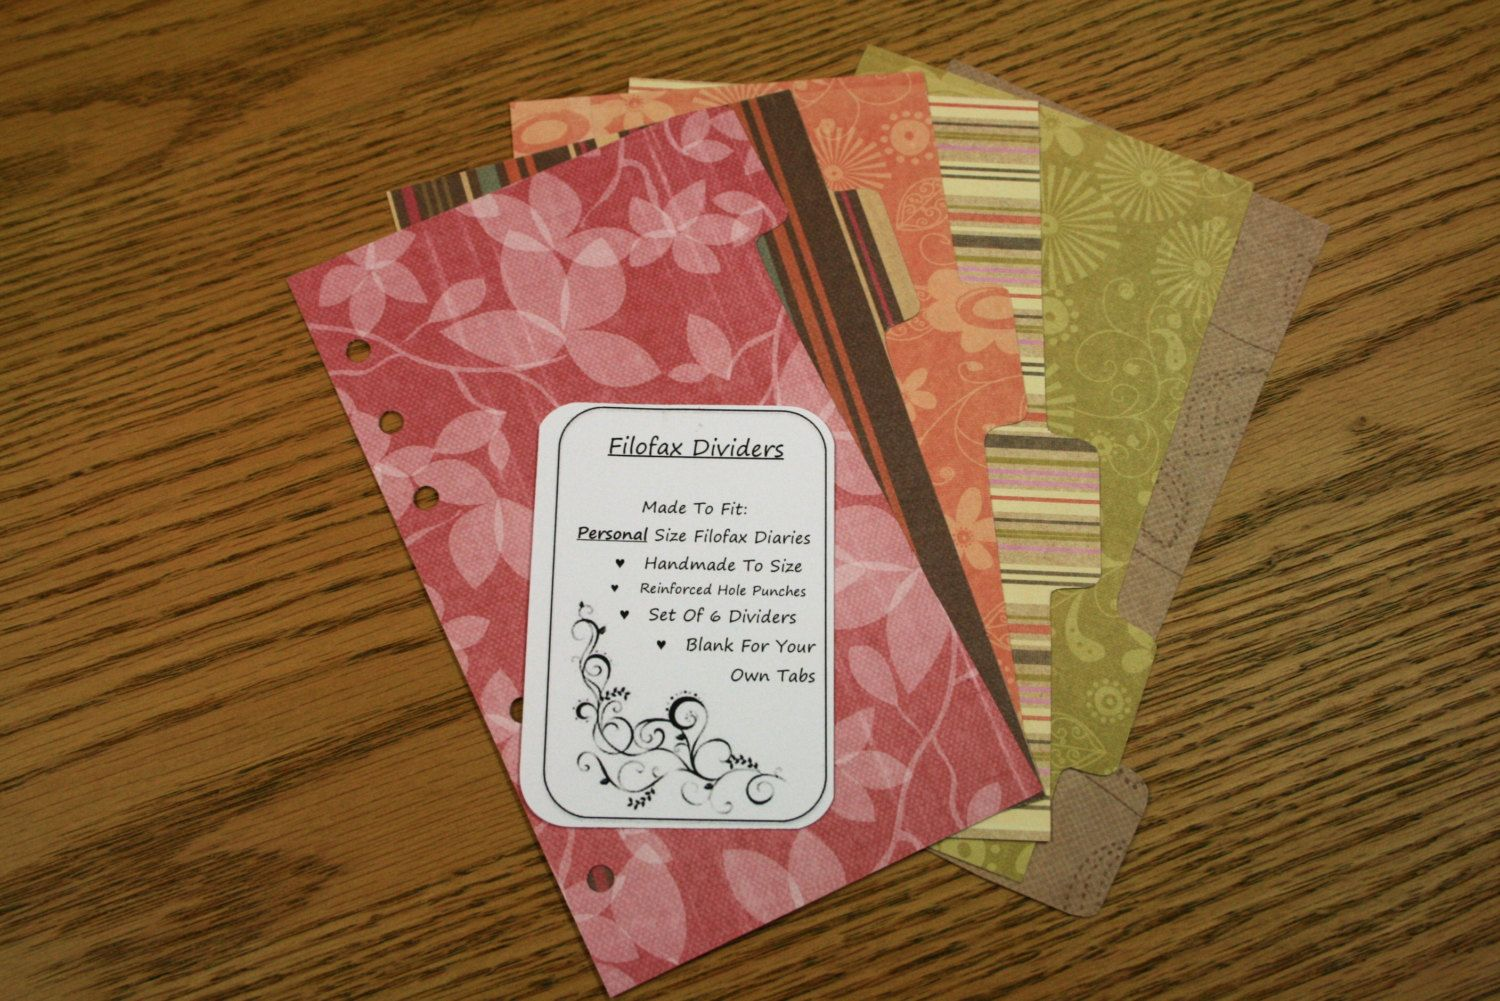 Filofax Dividers Handmade Double Sided Bold Flower Design Pink/Green/Brown - Personal / Pocket by BeccaLeaDesigns on Etsy